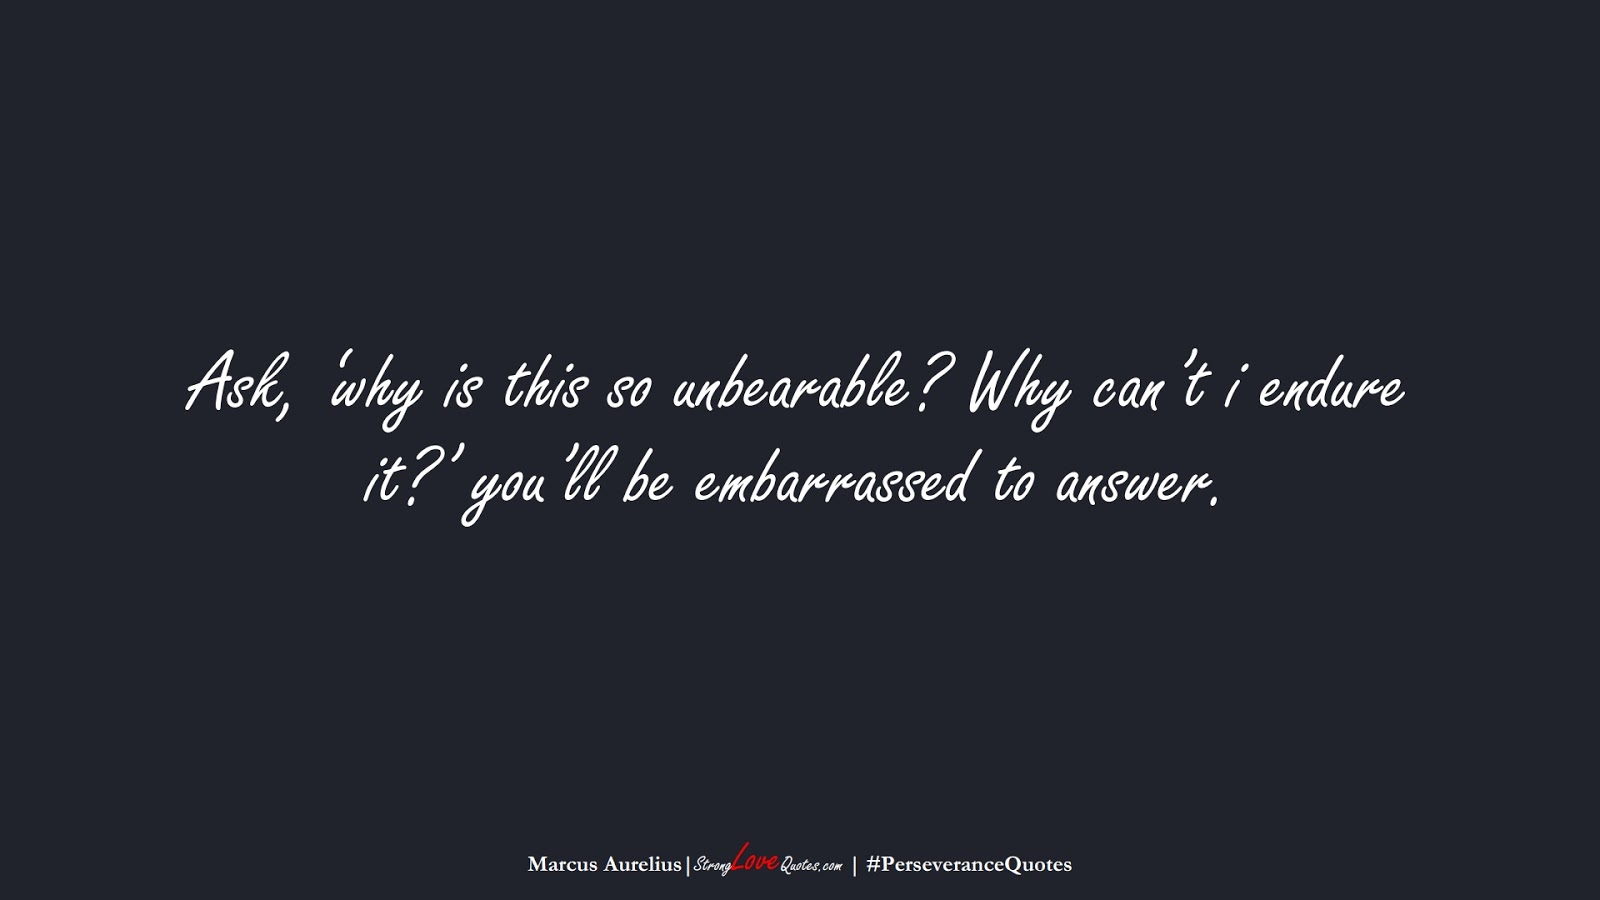 Ask, 'why is this so unbearable? Why can't i endure it?' you'll be embarrassed to answer. (Marcus Aurelius);  #PerseveranceQuotes